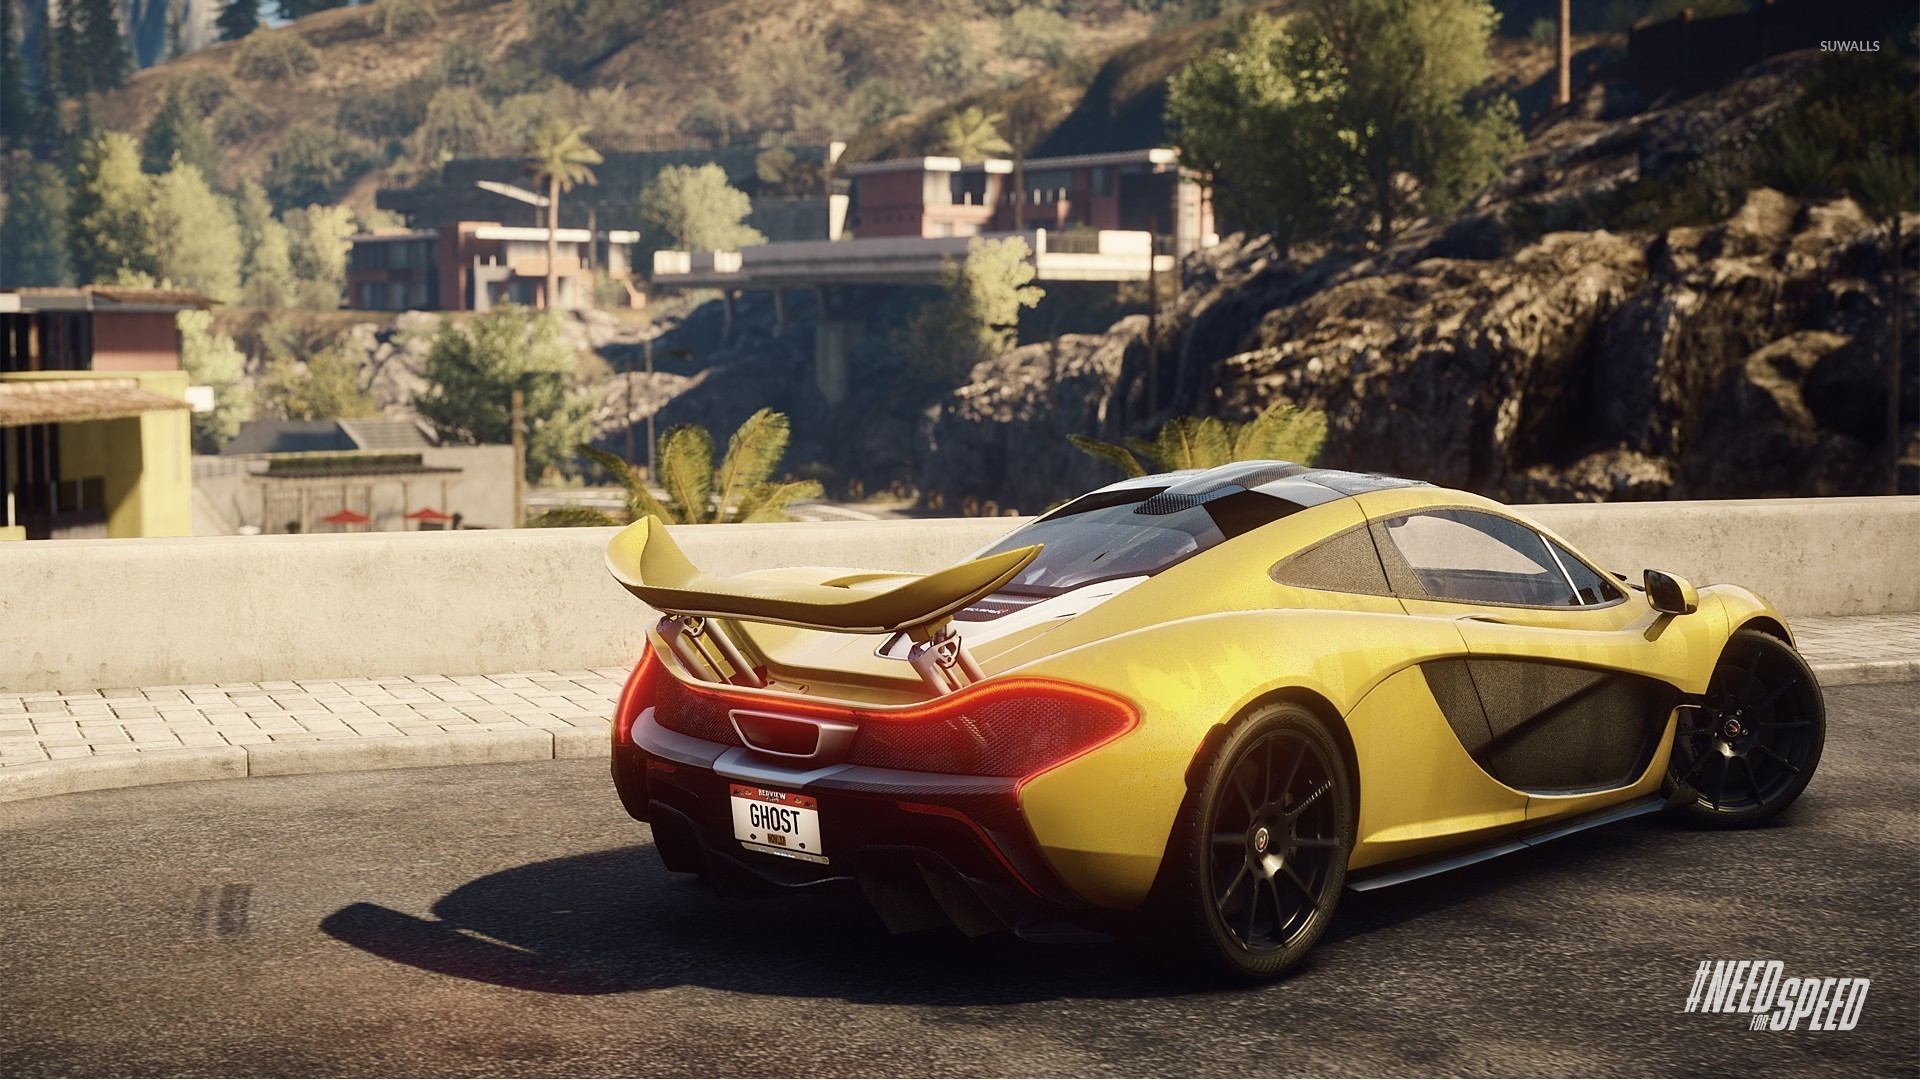 aston martin vanquish - need for speed: rivals wallpaper - game